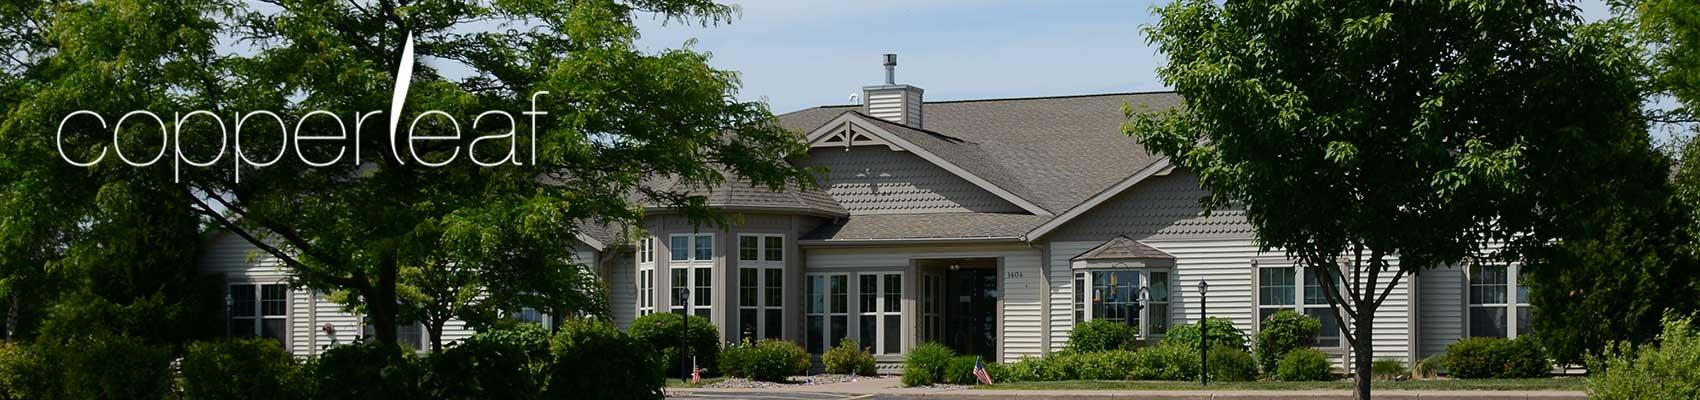 assisted living facilities in Jordan Wisconsin Portage County